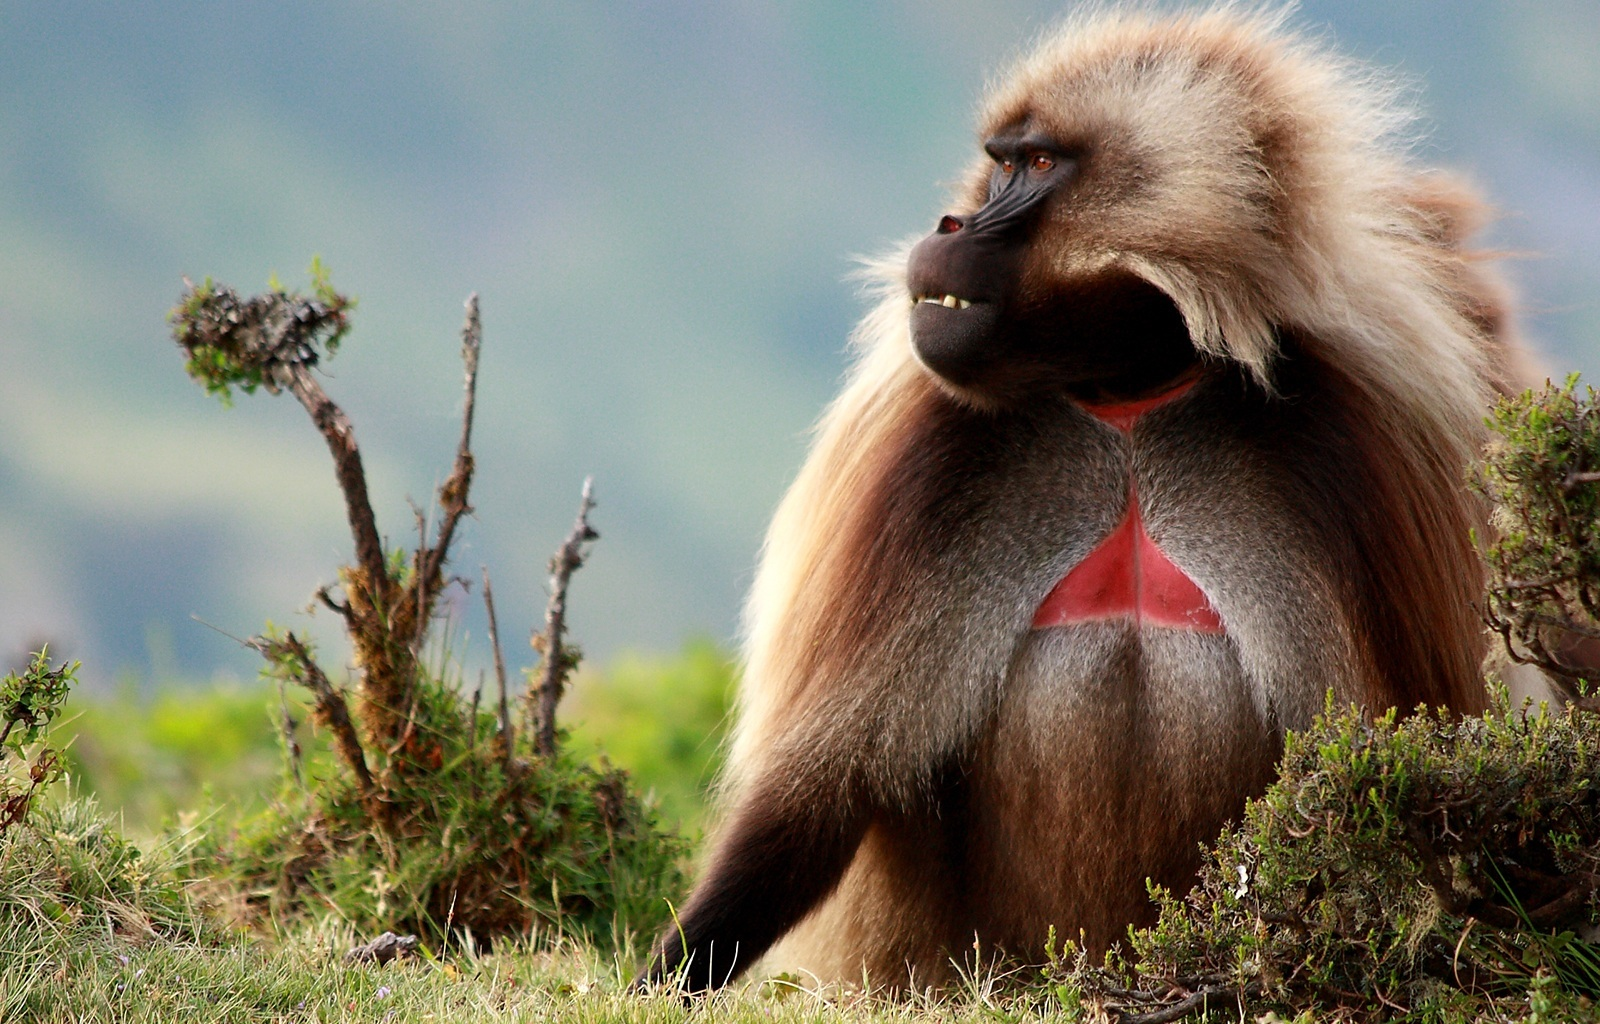 29803 Screensavers and Wallpapers Monkeys for phone. Download Animals, Monkeys pictures for free